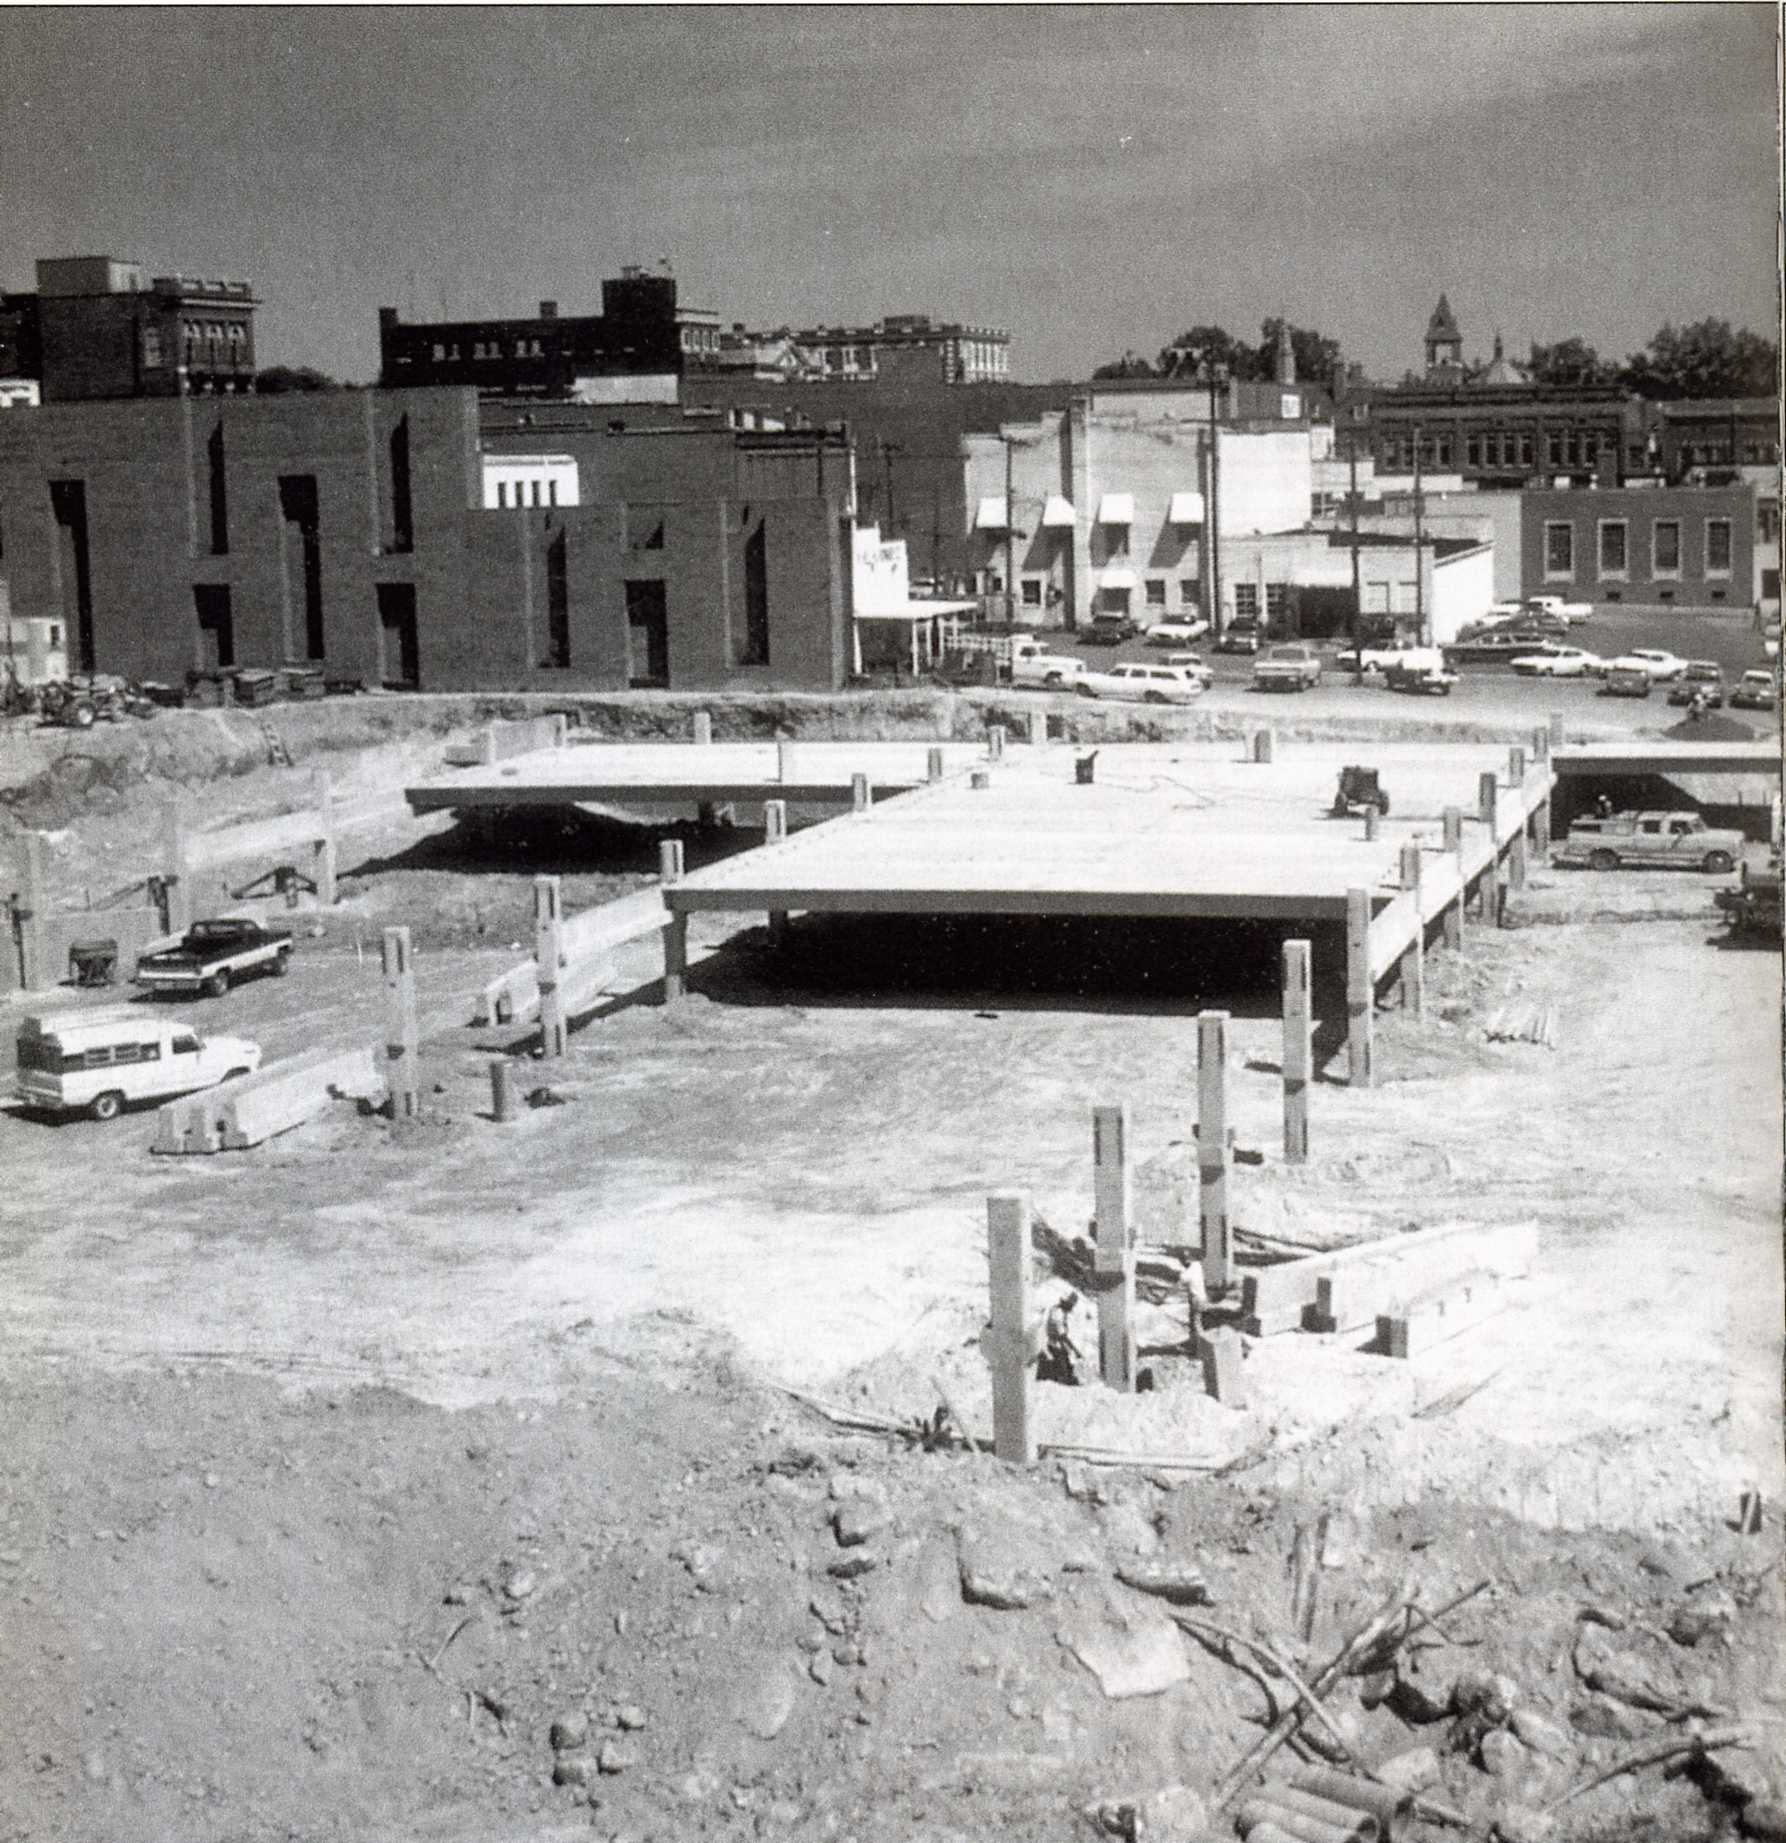 The African American business area along with many small businesses along East Black Street were demolished to make changes in the1970s.